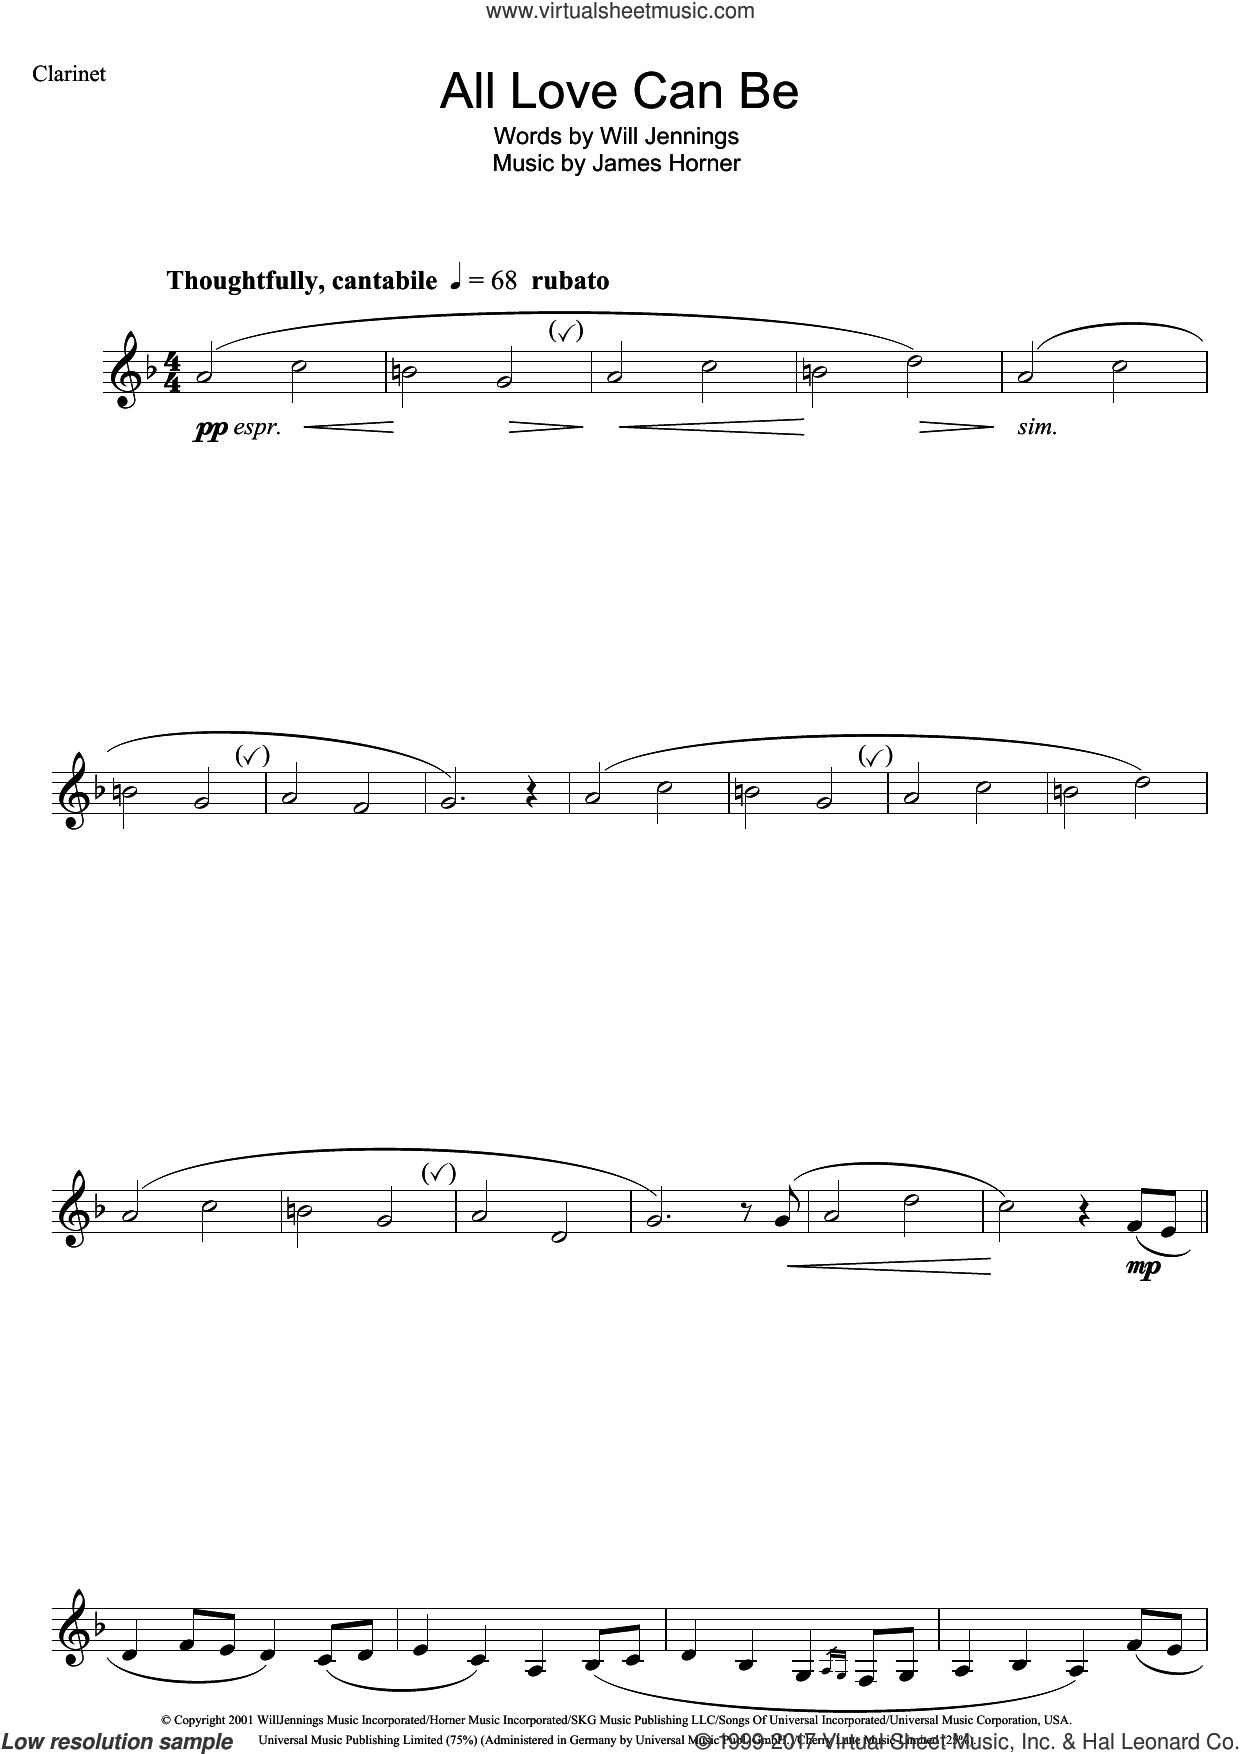 All Love Can Be (from A Beautiful Mind) sheet music for clarinet solo by James Horner, Charlotte Church and Will Jennings, intermediate skill level